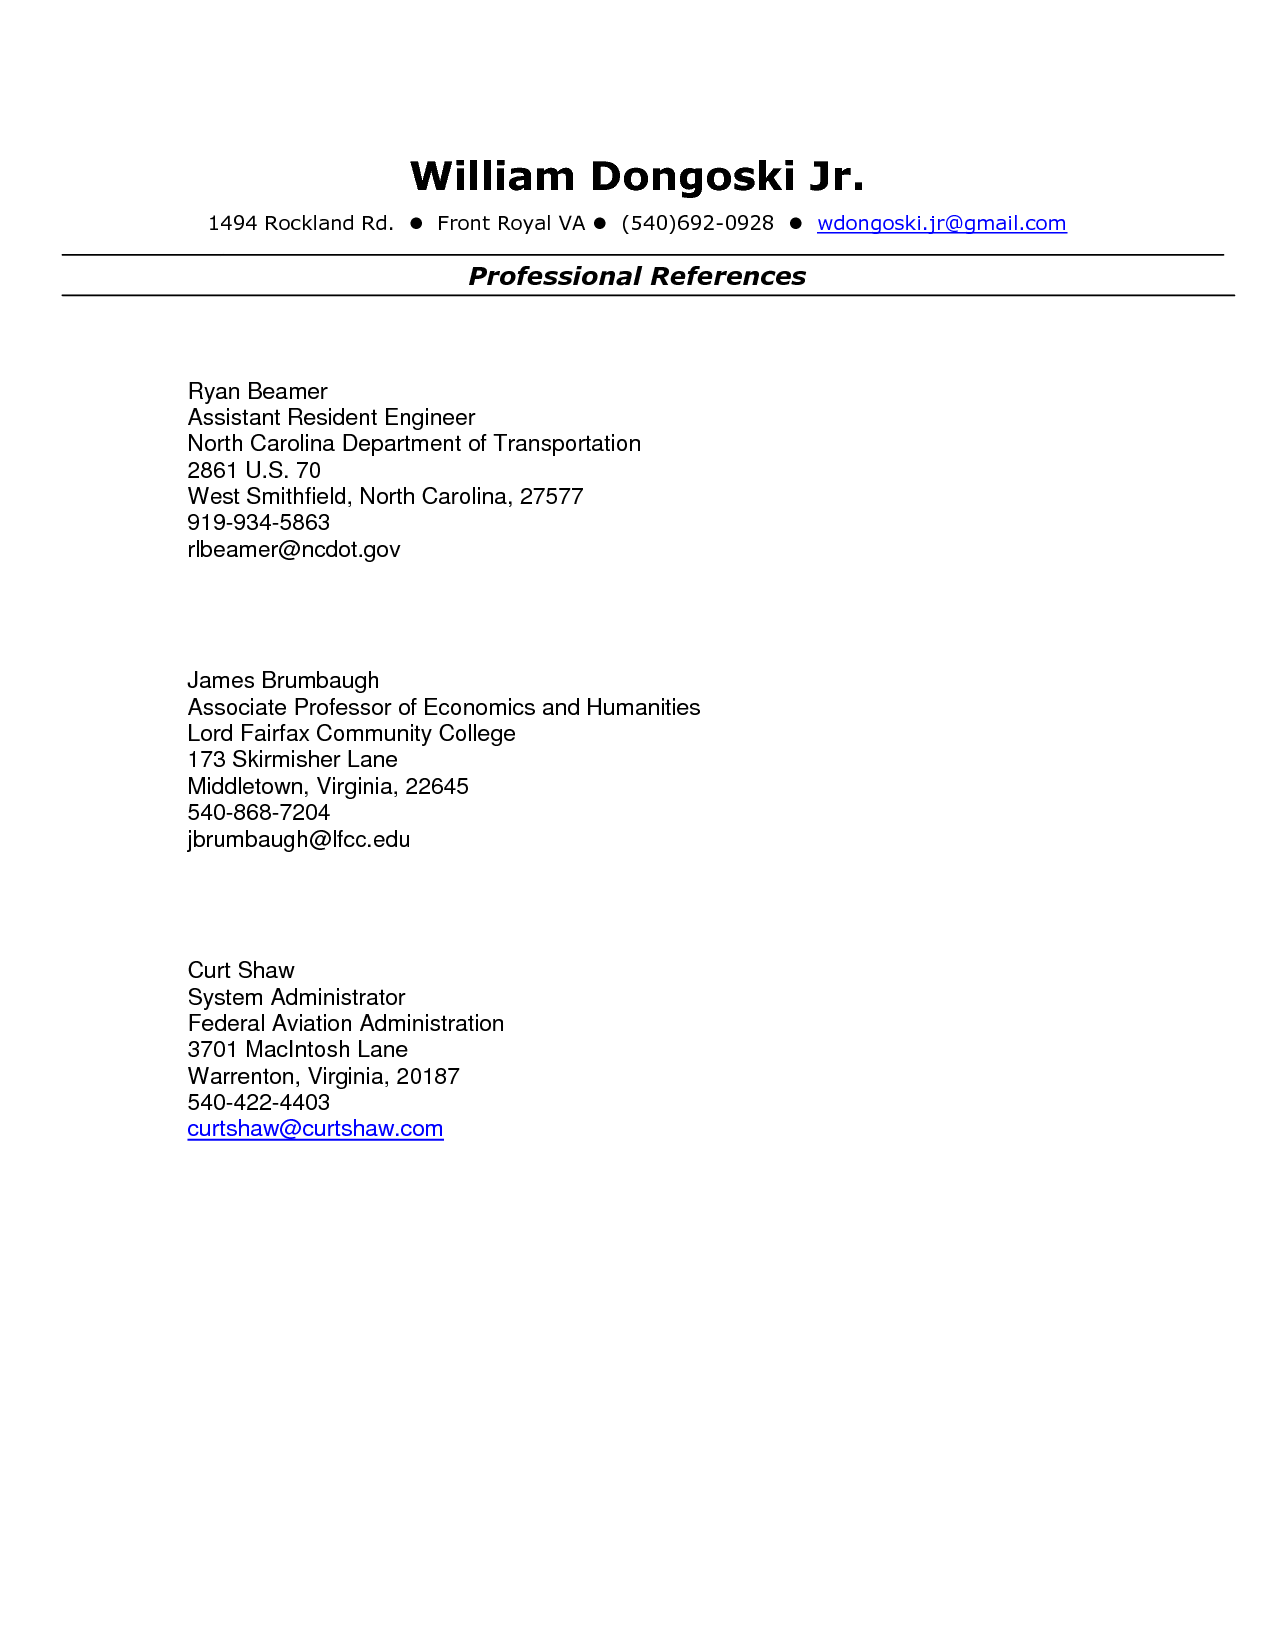 Resume Format With References References In Resume Format References On Resume Format Sample .